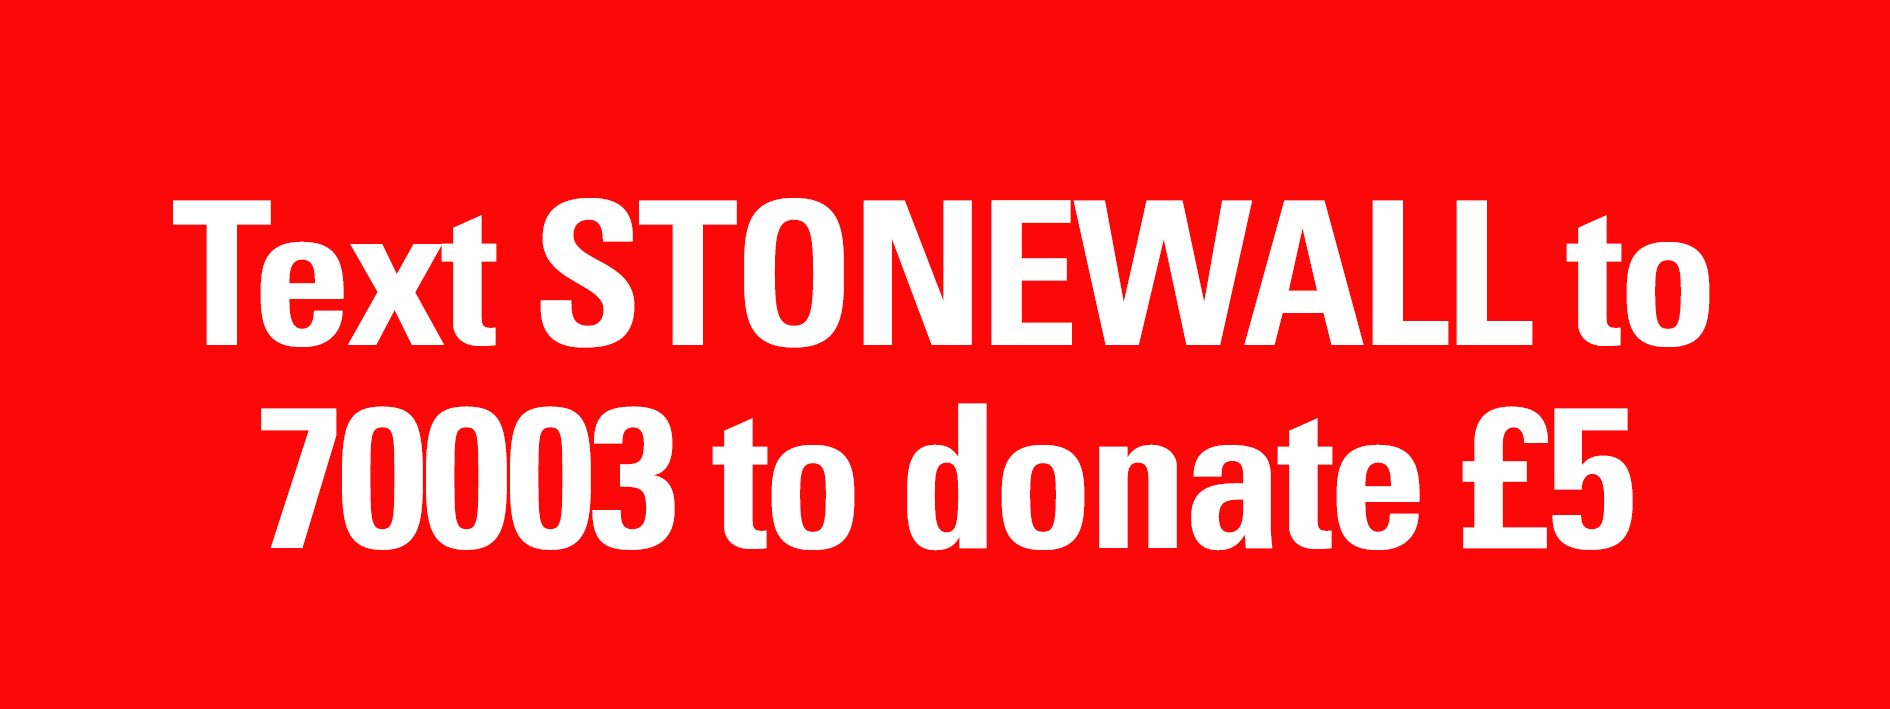 Text STONEWALL to 70003 to donate £5